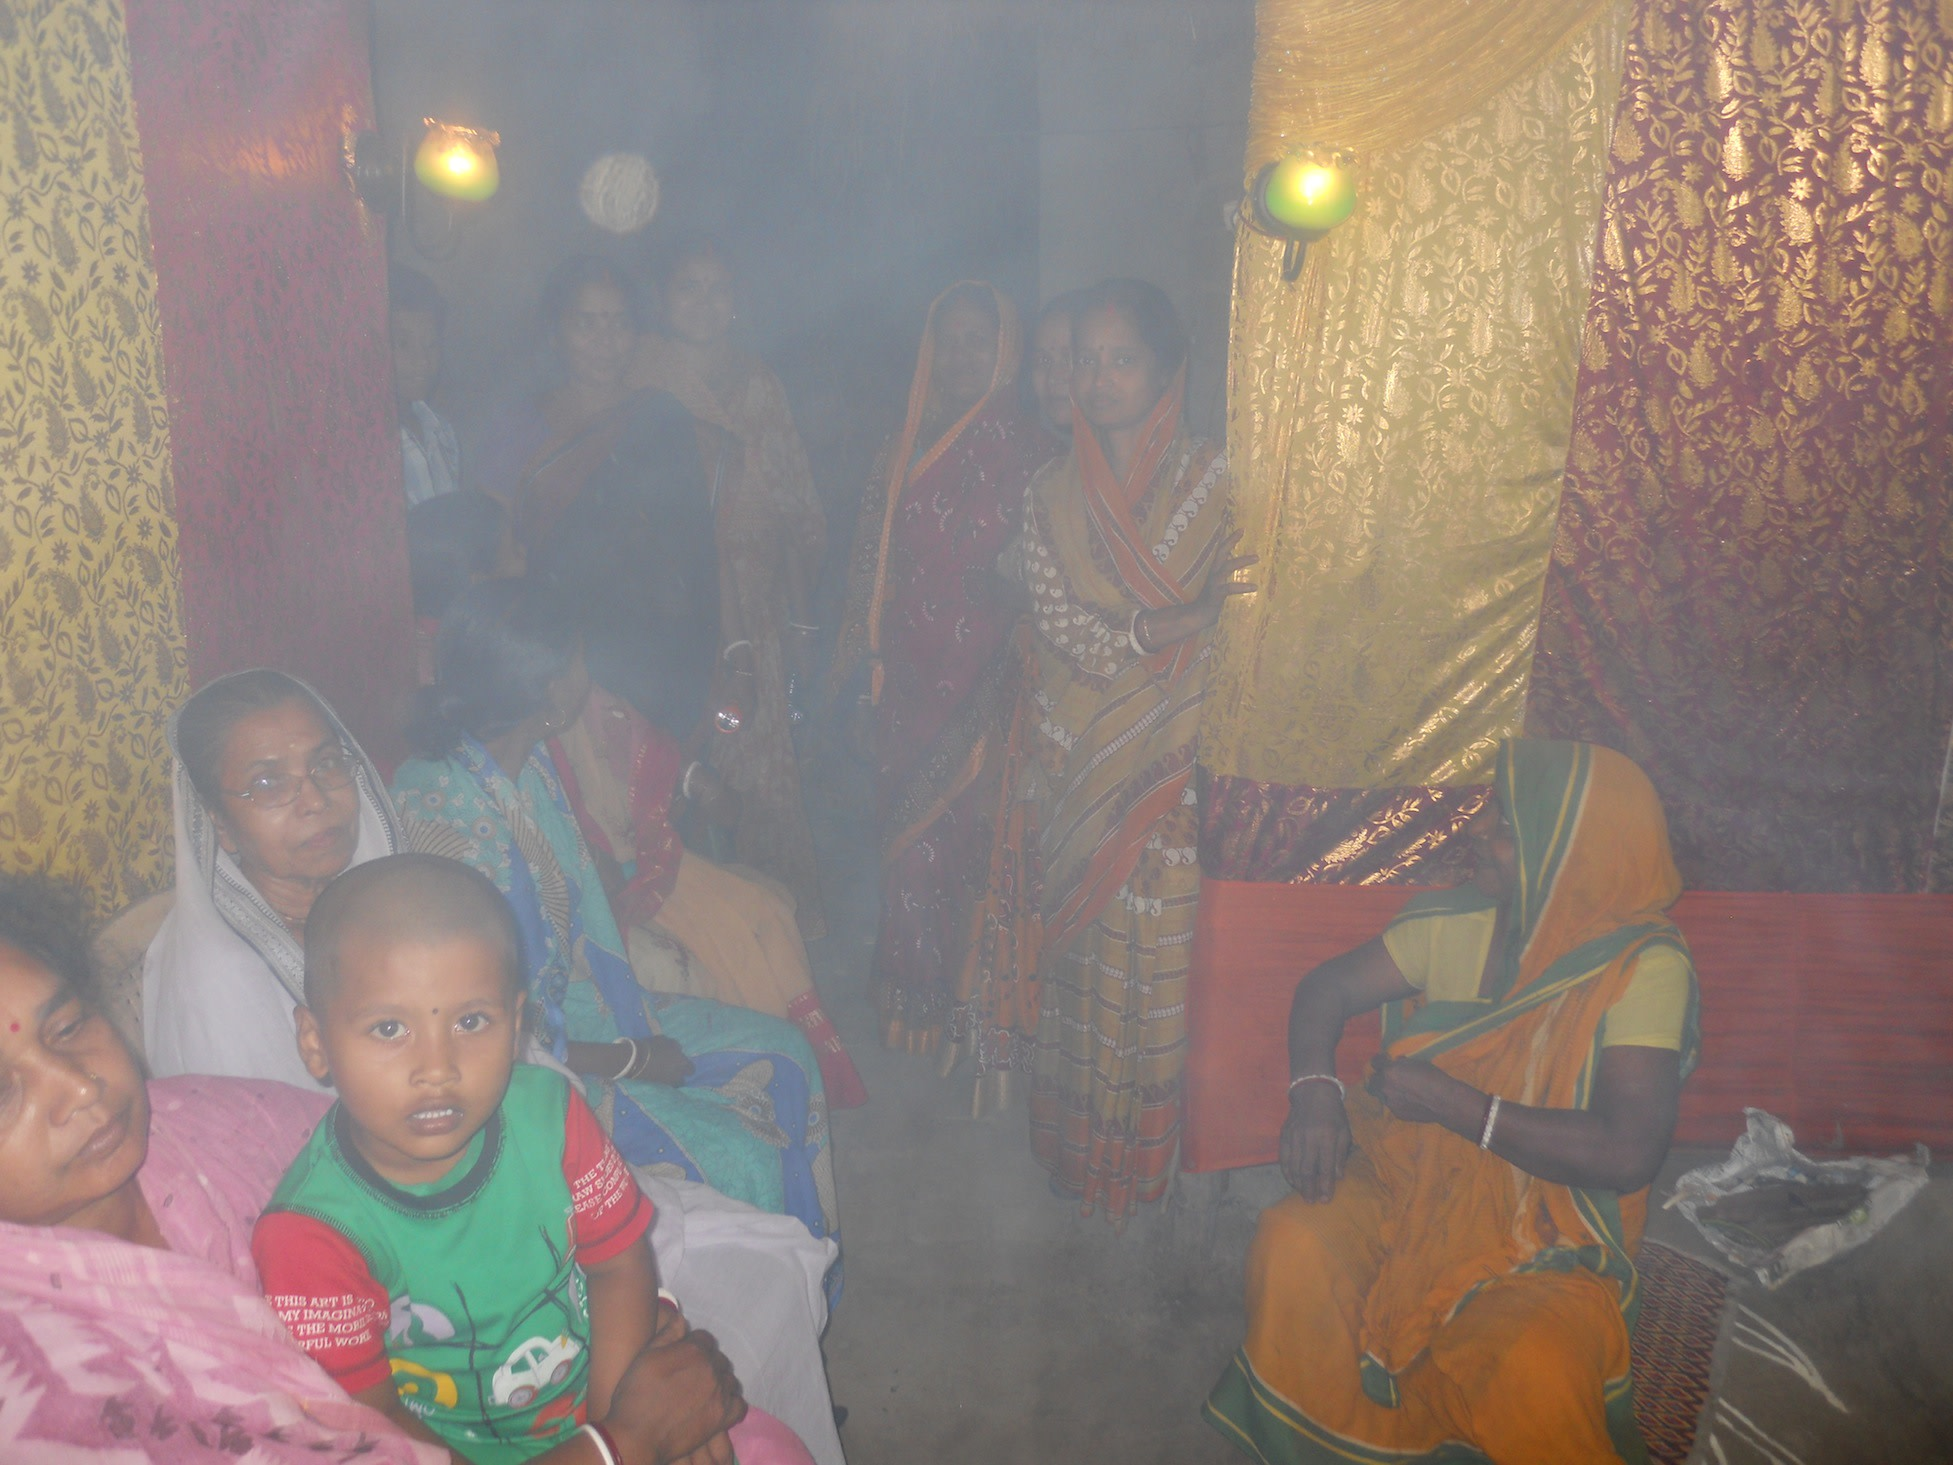 Local spectators consisted of Ullon's residents who seems in awe of the whole ceremony. Even so, some of them told me that they sometimes found it difficult to watch as the incensed stick-fuelled fragrant smoke would occasionally partially impair their view. The fragrant smoke had made the atmosphere of the mandir quite hazy by then.